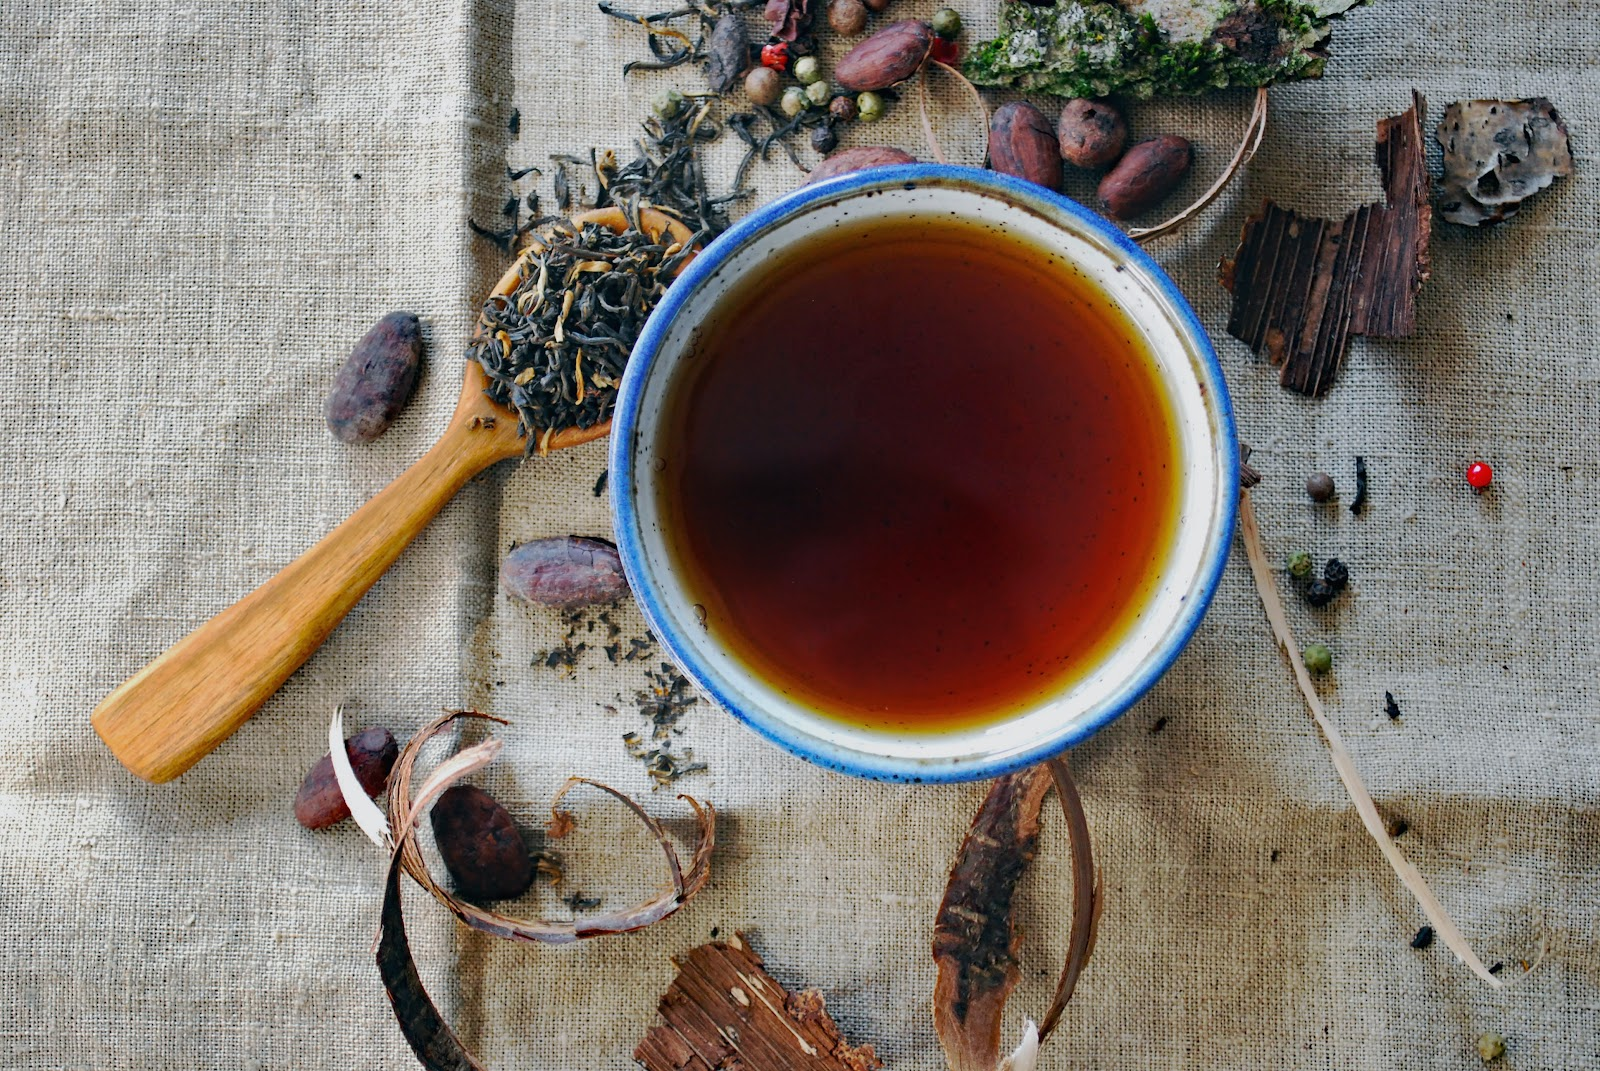 herbal tea, one of the high-vibration foods, in a cup